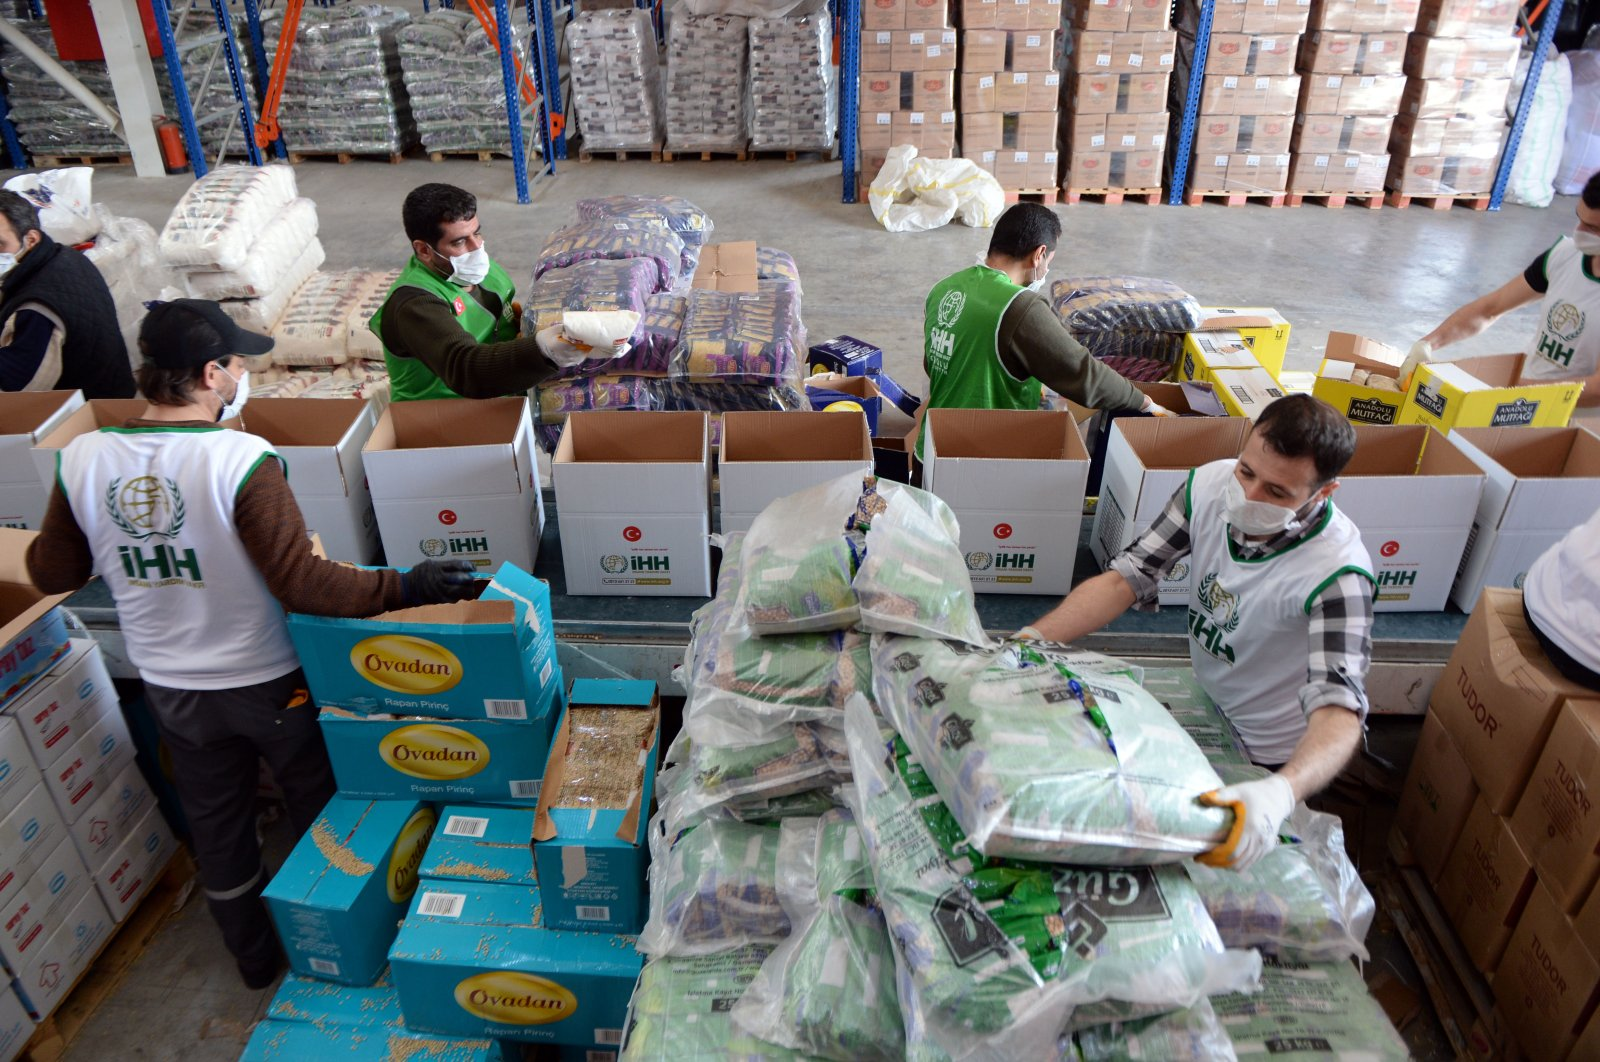 Aid workers at the IHH load packages to be distributed to the needy as part of coronavirus relief efforts, Friday, March 27, 2020. (AA Photo)